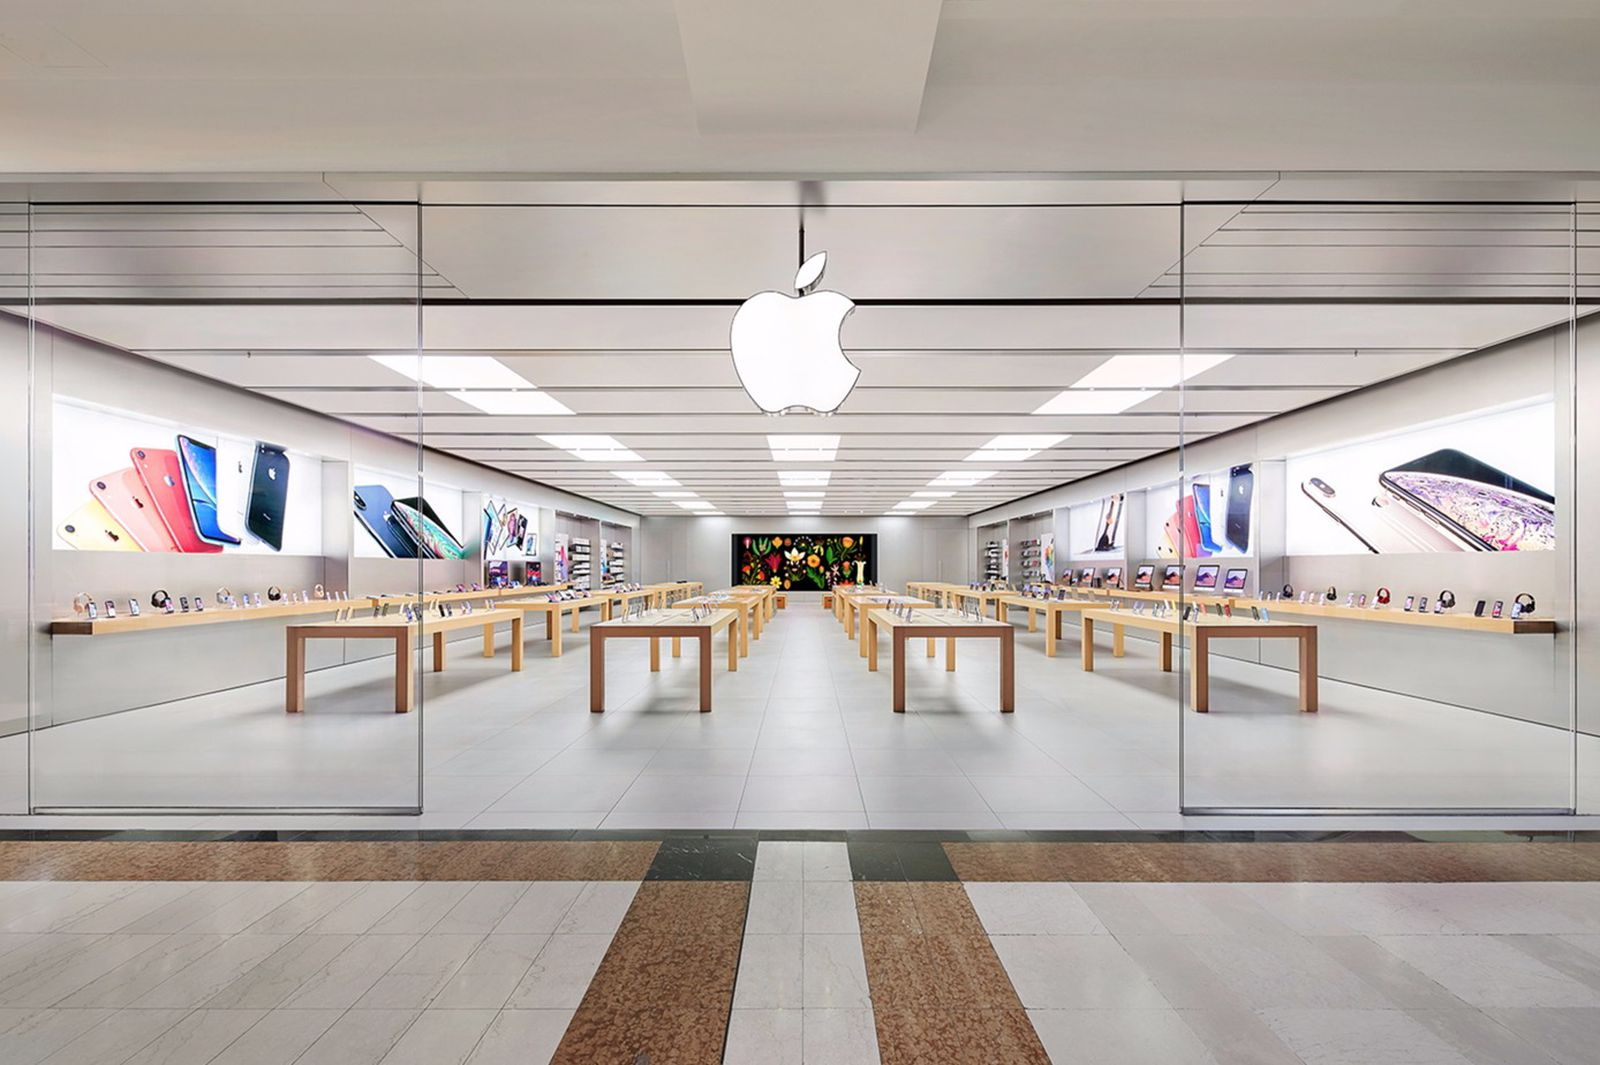 Apple Temporarily Closes Some Retail Stores in Italy Due to Coronavirus  Outbreak - MacRumors